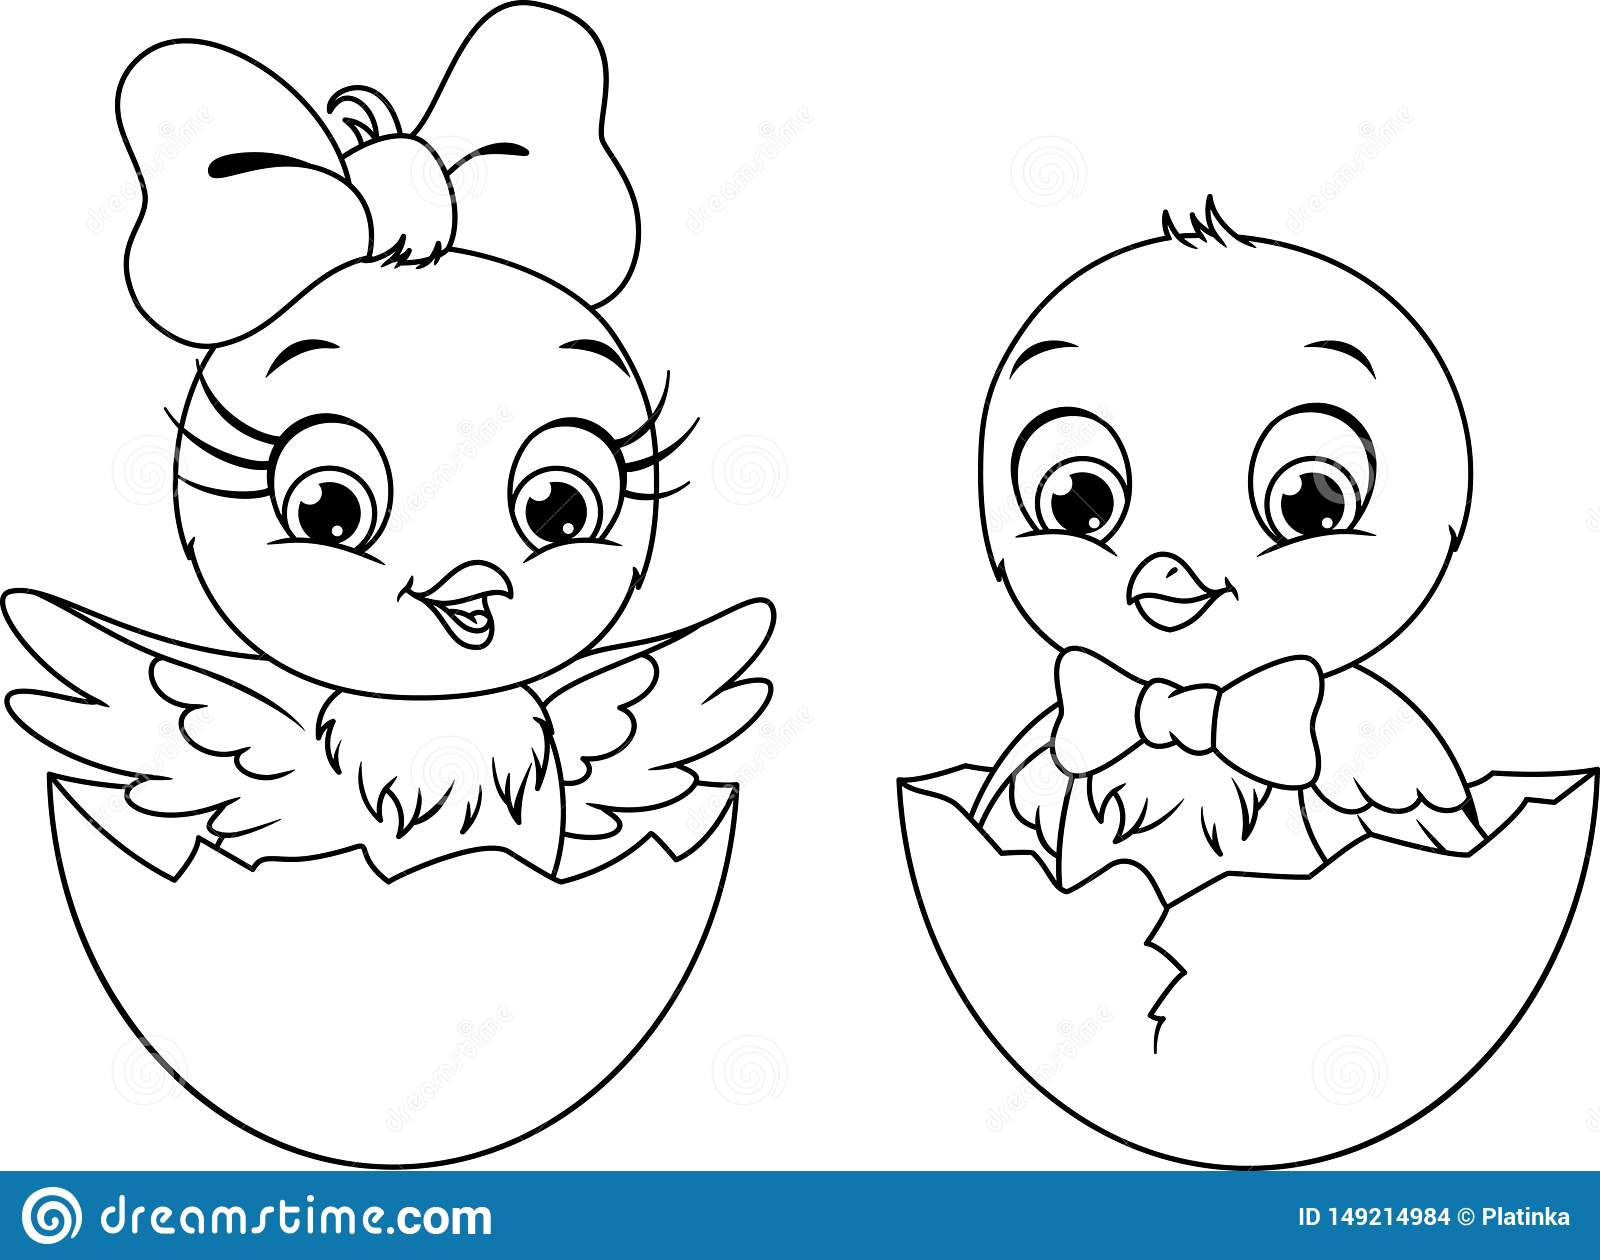 Chicken Lay Egg and Then Hatch Coloring Pages - NetArt | 1260x1600